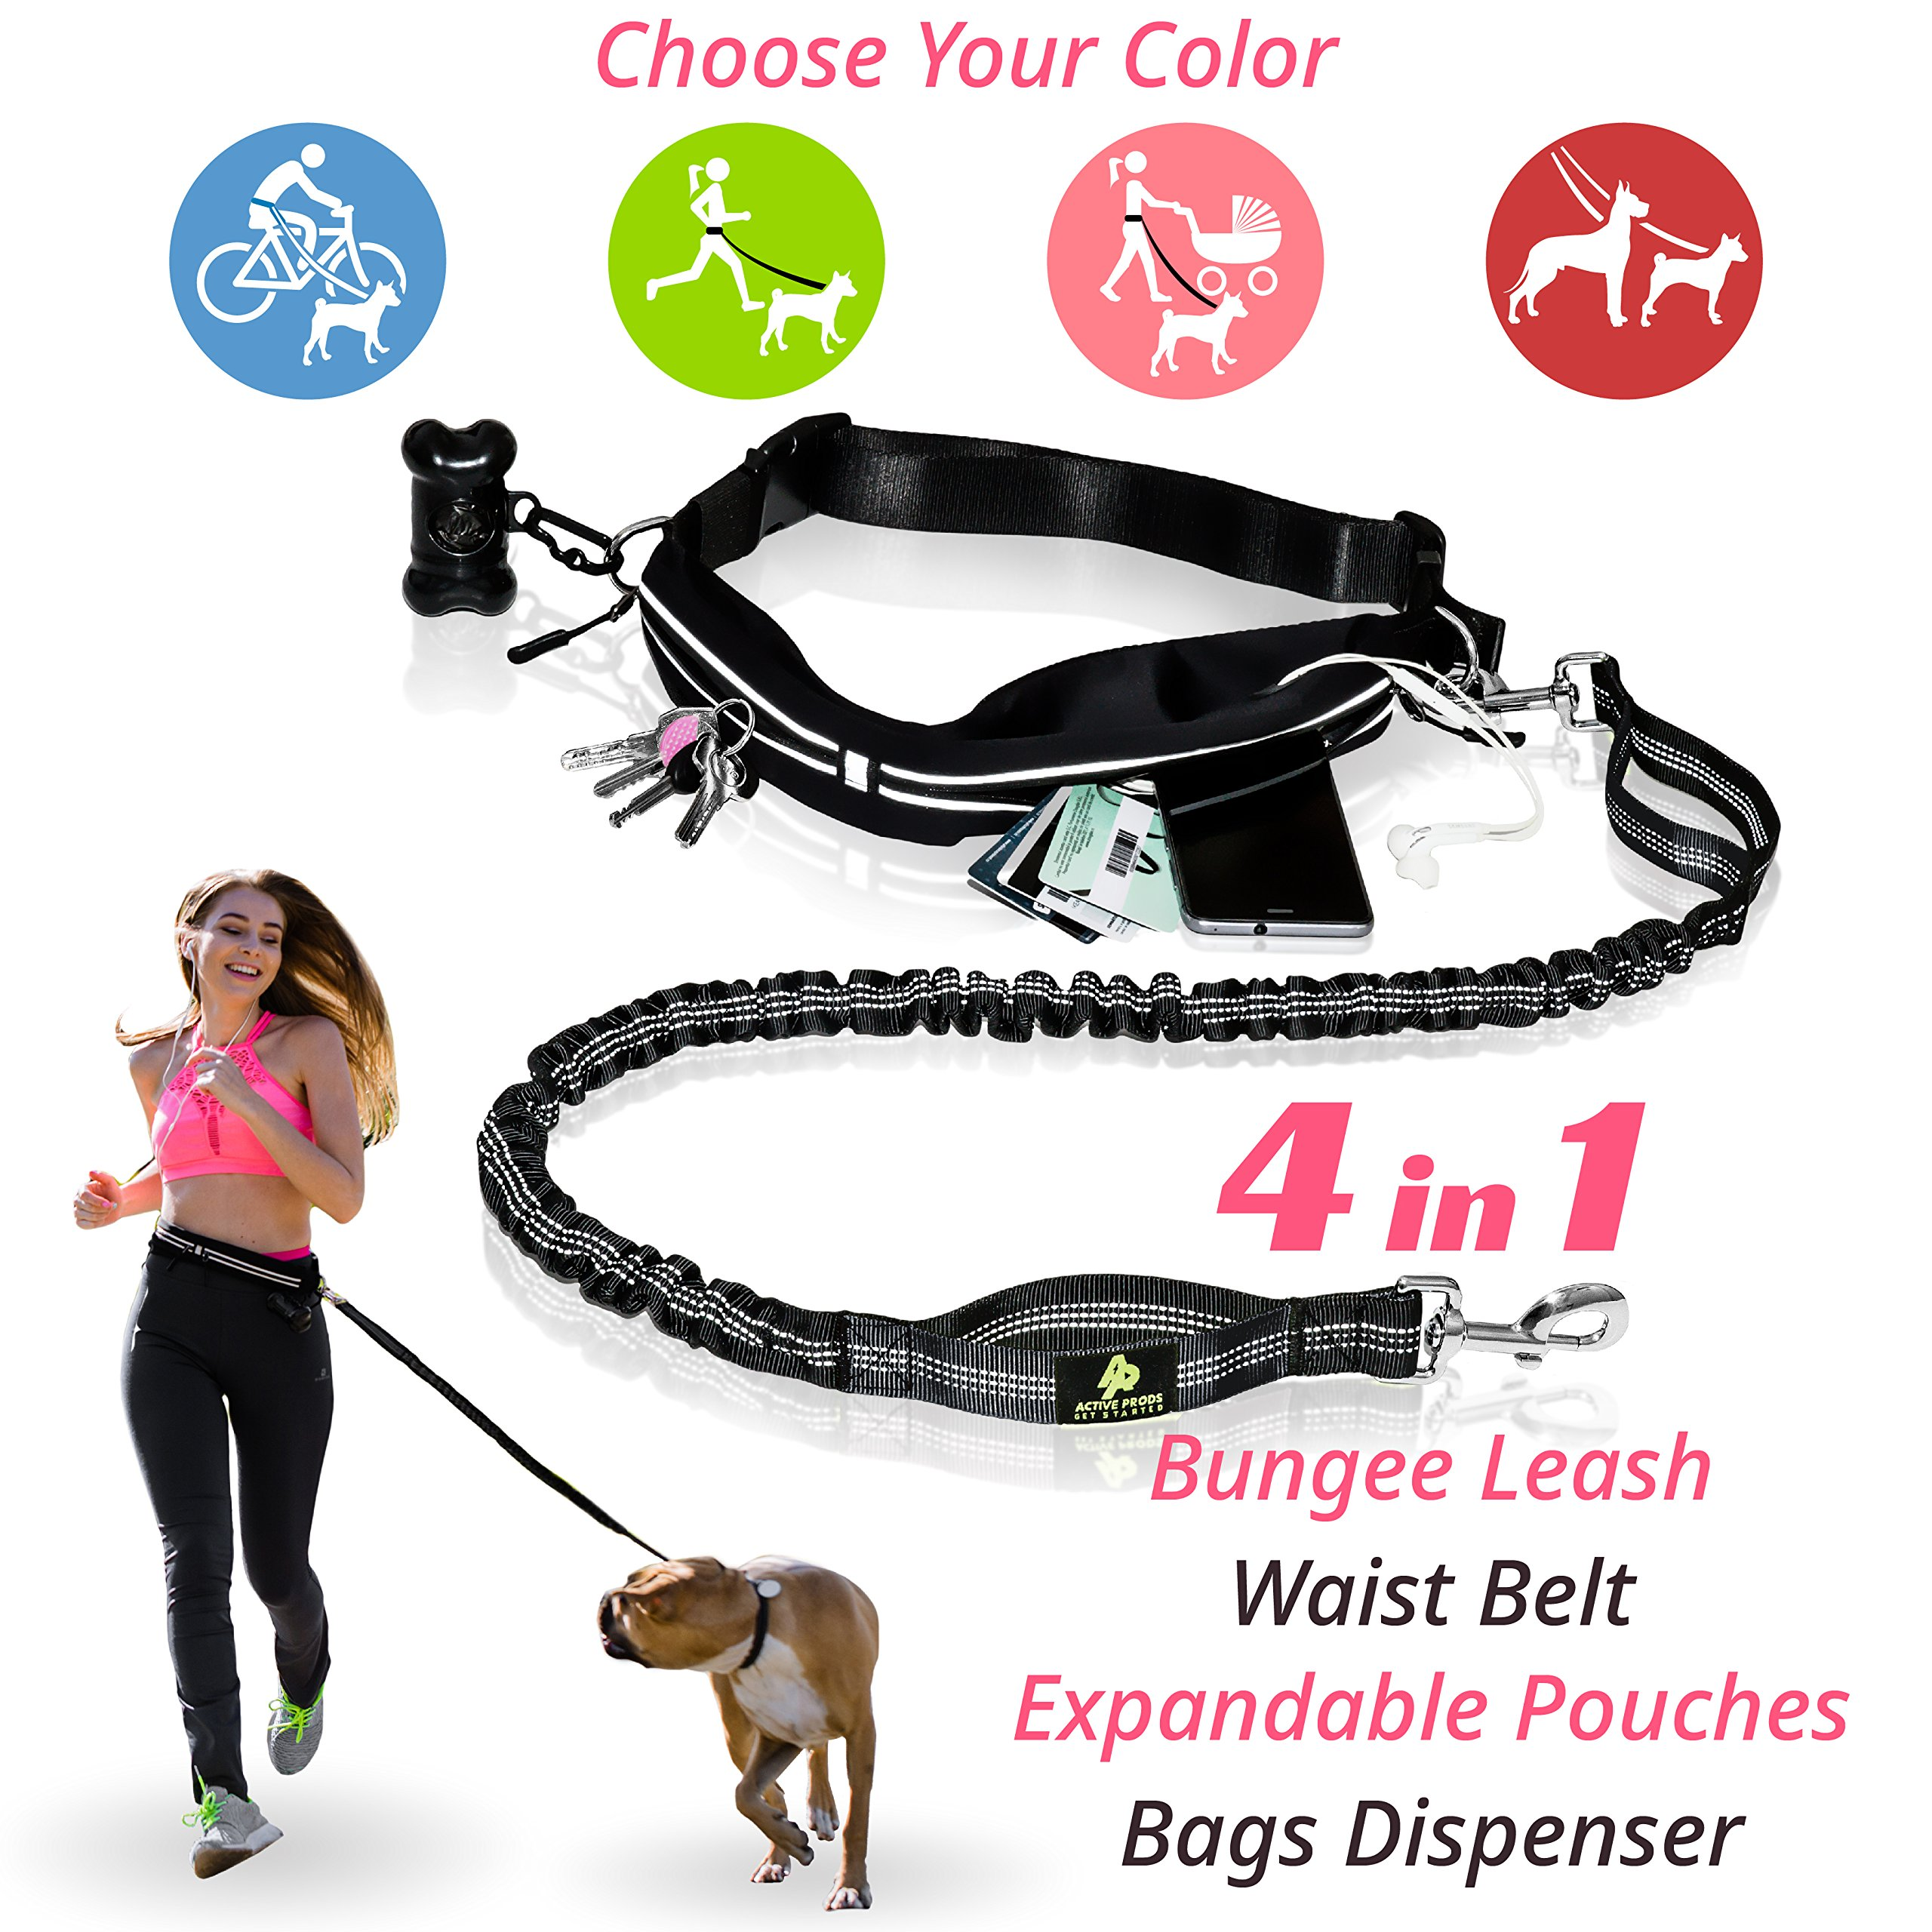 PREMIUM Hands Free Dog Leash | Bungee Dog Leash for Walking & Running with Small, Medium or Large Dogs | Reflective Waist Belt for Phone, Keys and Cards |BONUS Collar Bag Dispenser |Great GIFT (BLACK)